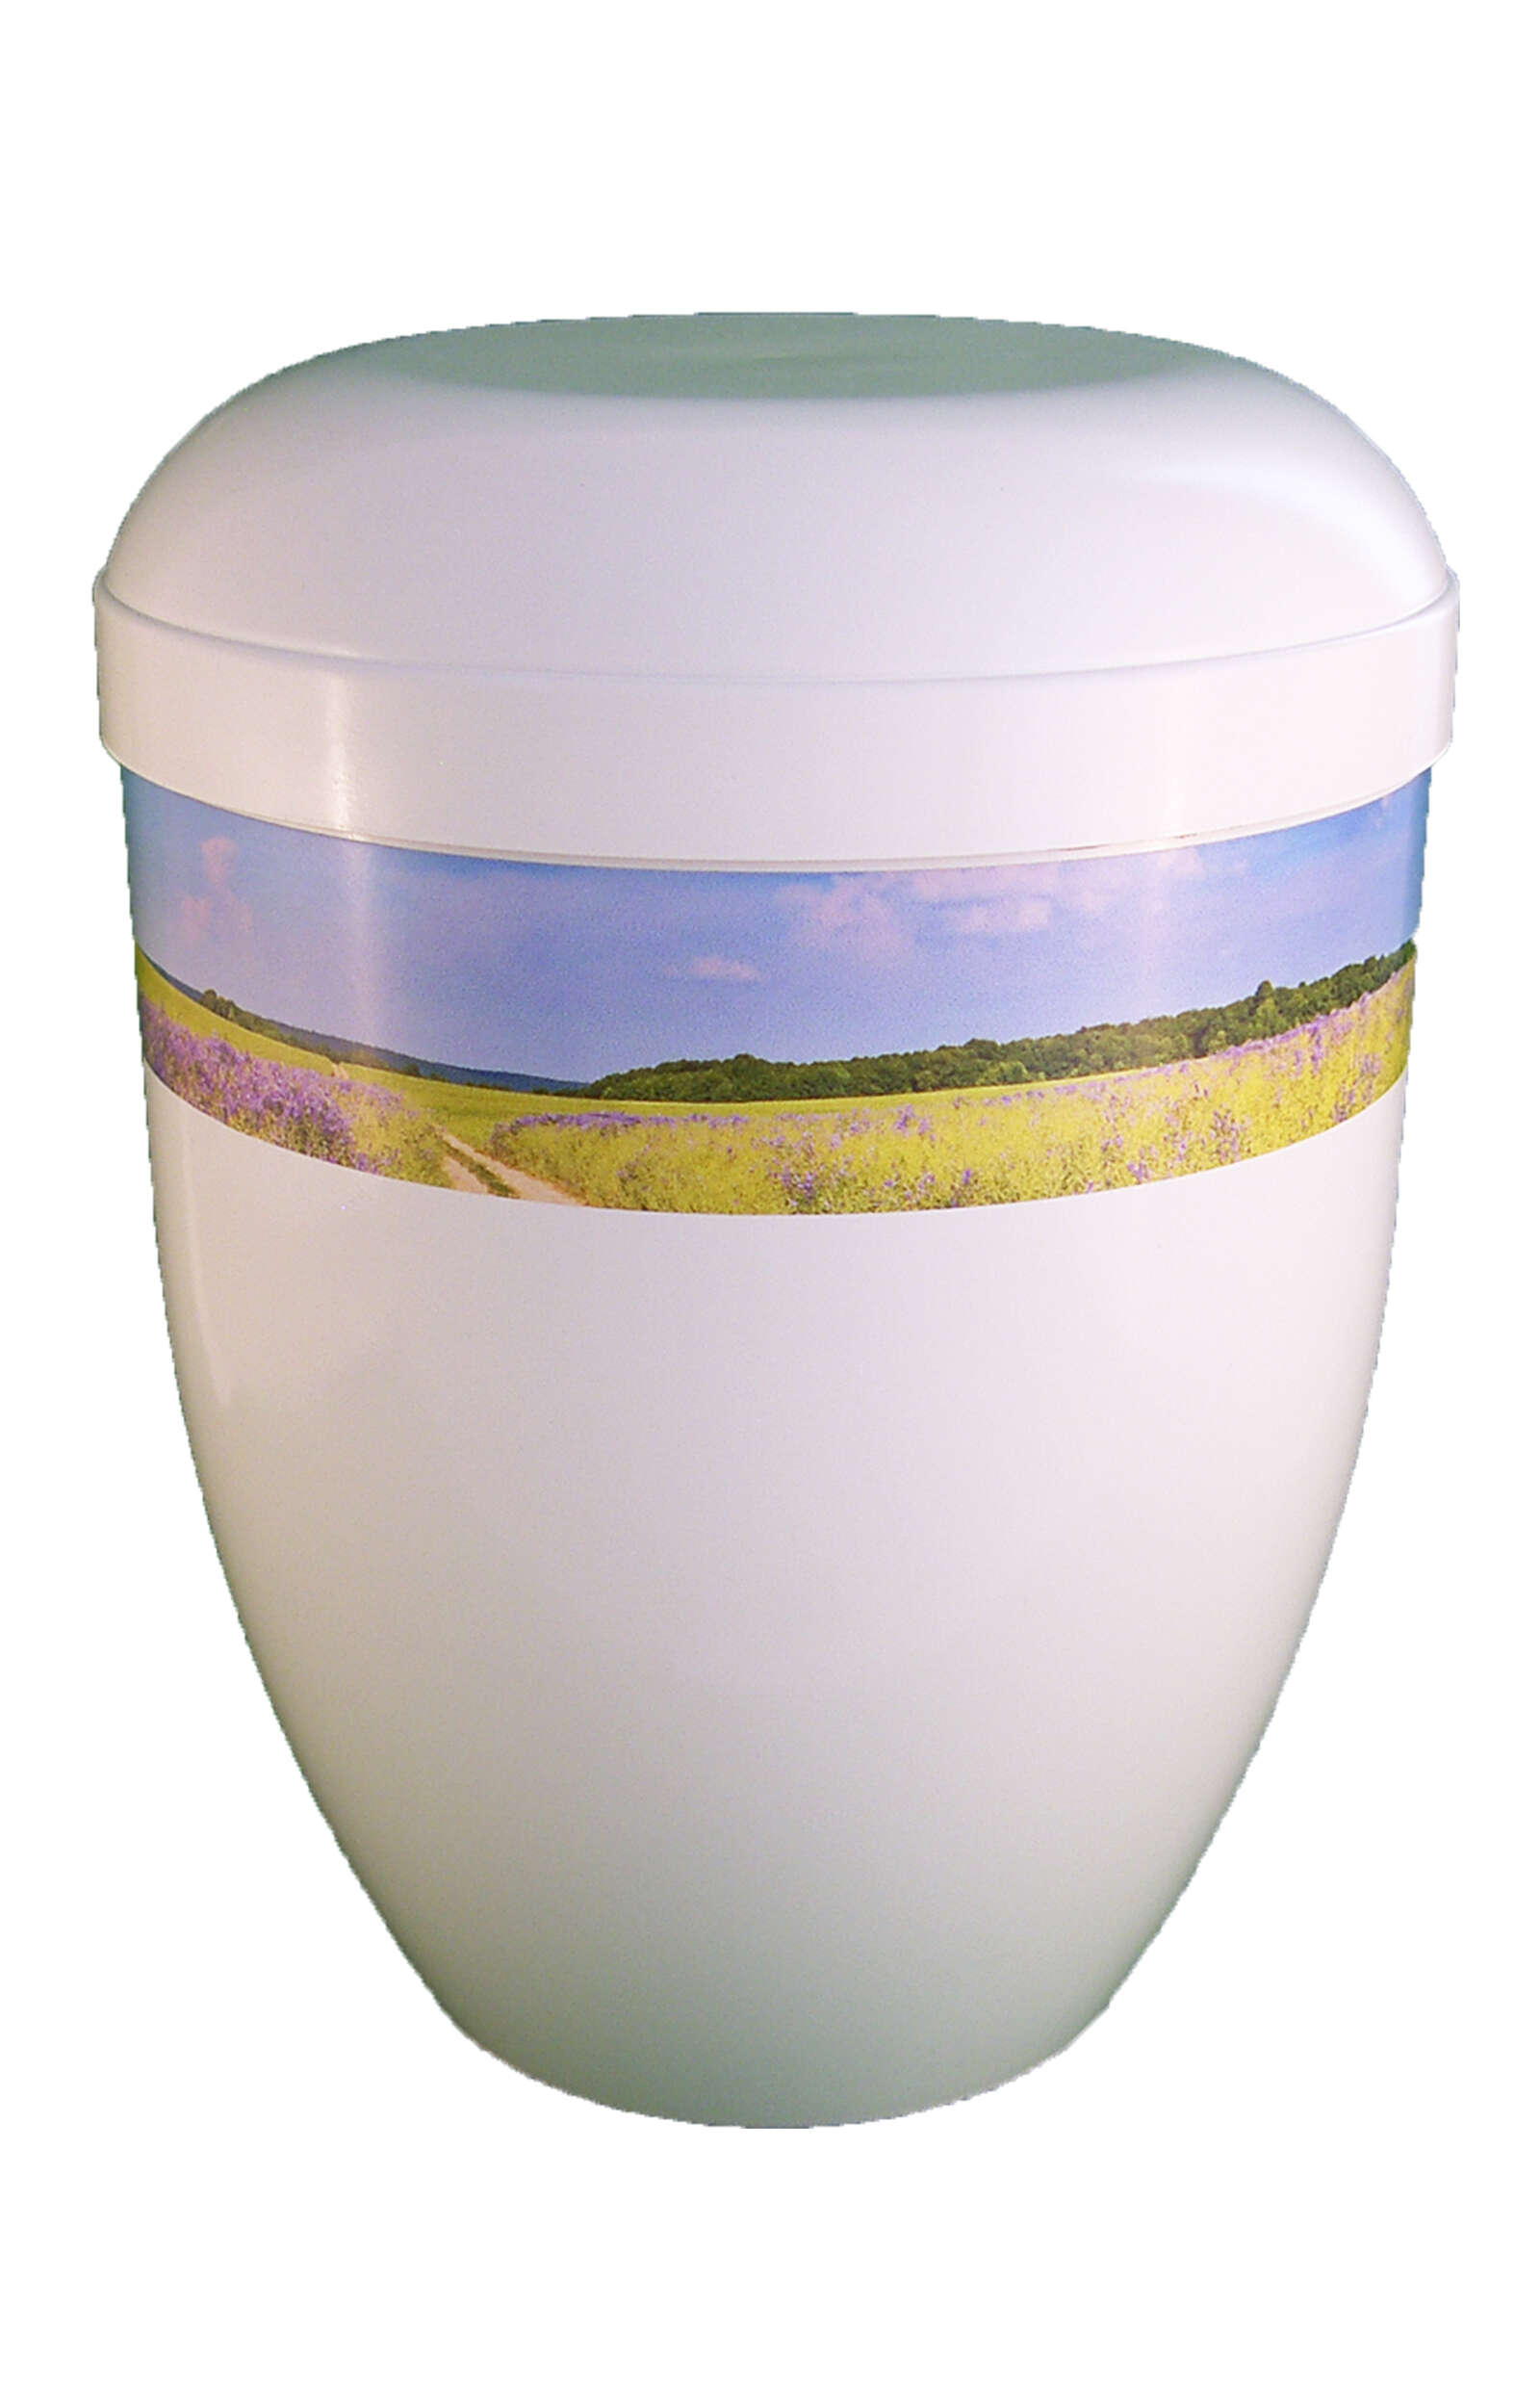 en BWG3704 panorama urn white glossy meadow in the sunshine funeral urns for human ashes